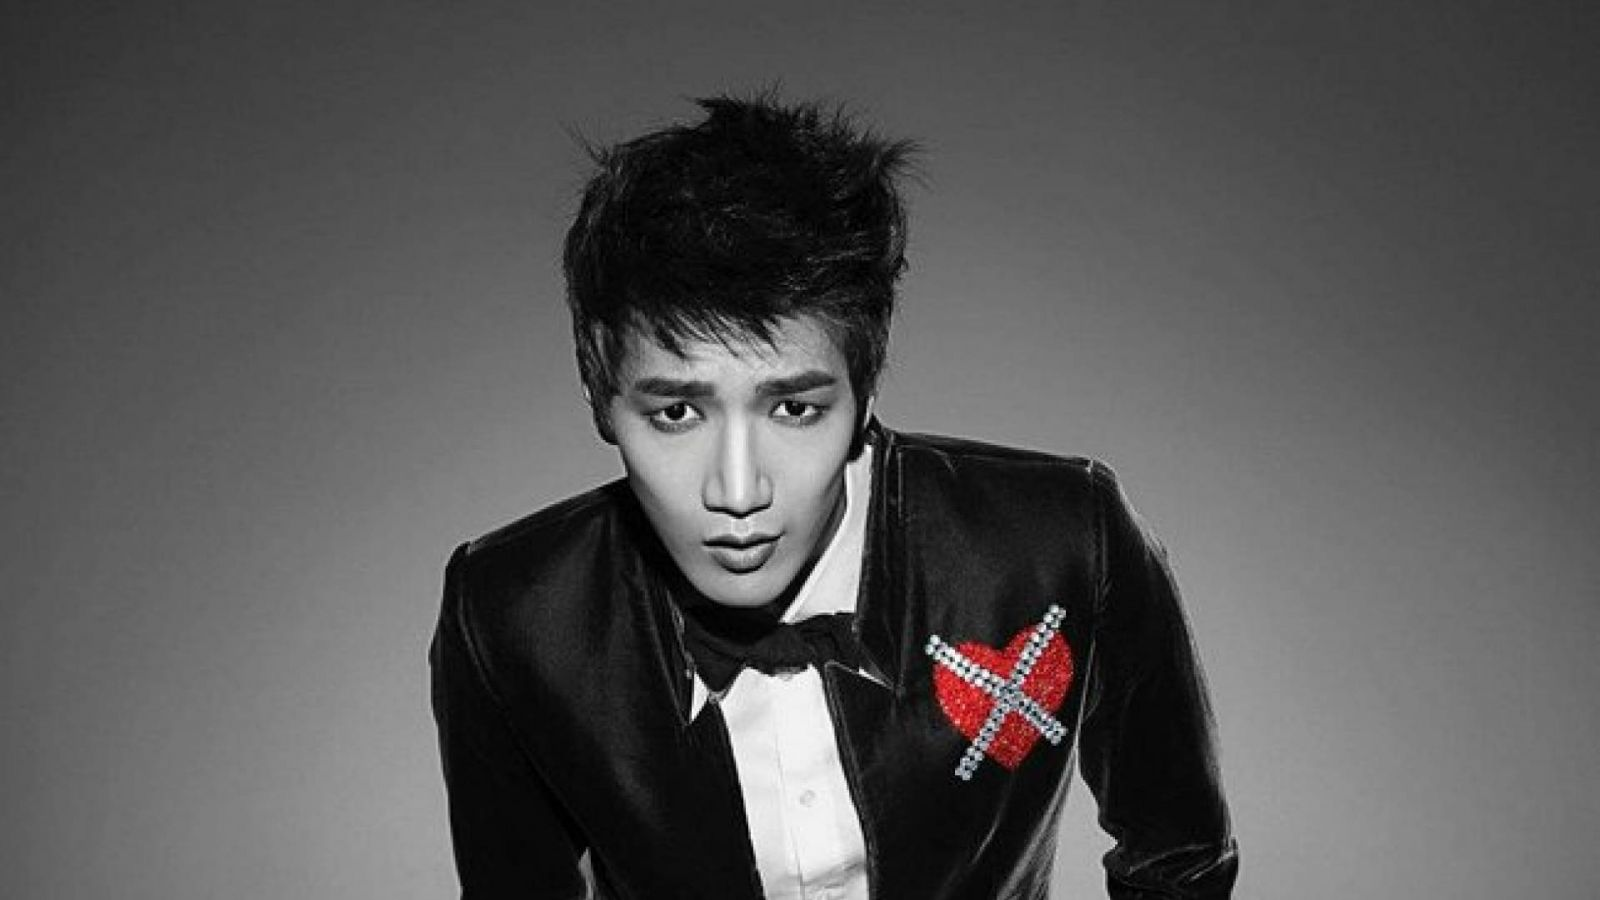 Novo álbum de Jun.K e sua turnê japonesa © JYP Entertainment